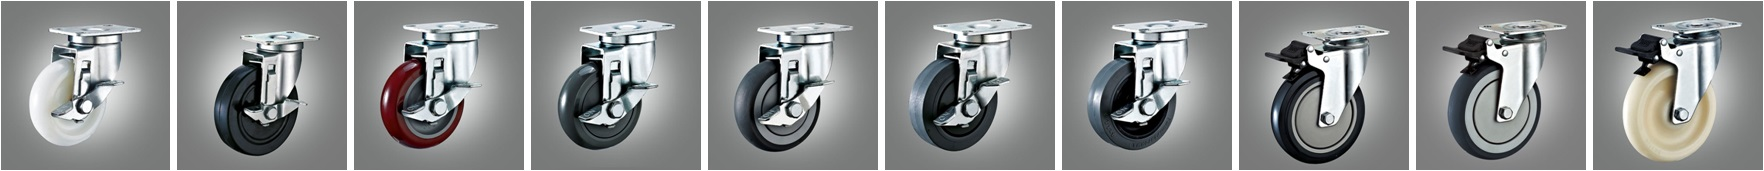 DORE Medium Duty Casters Collection.jpg